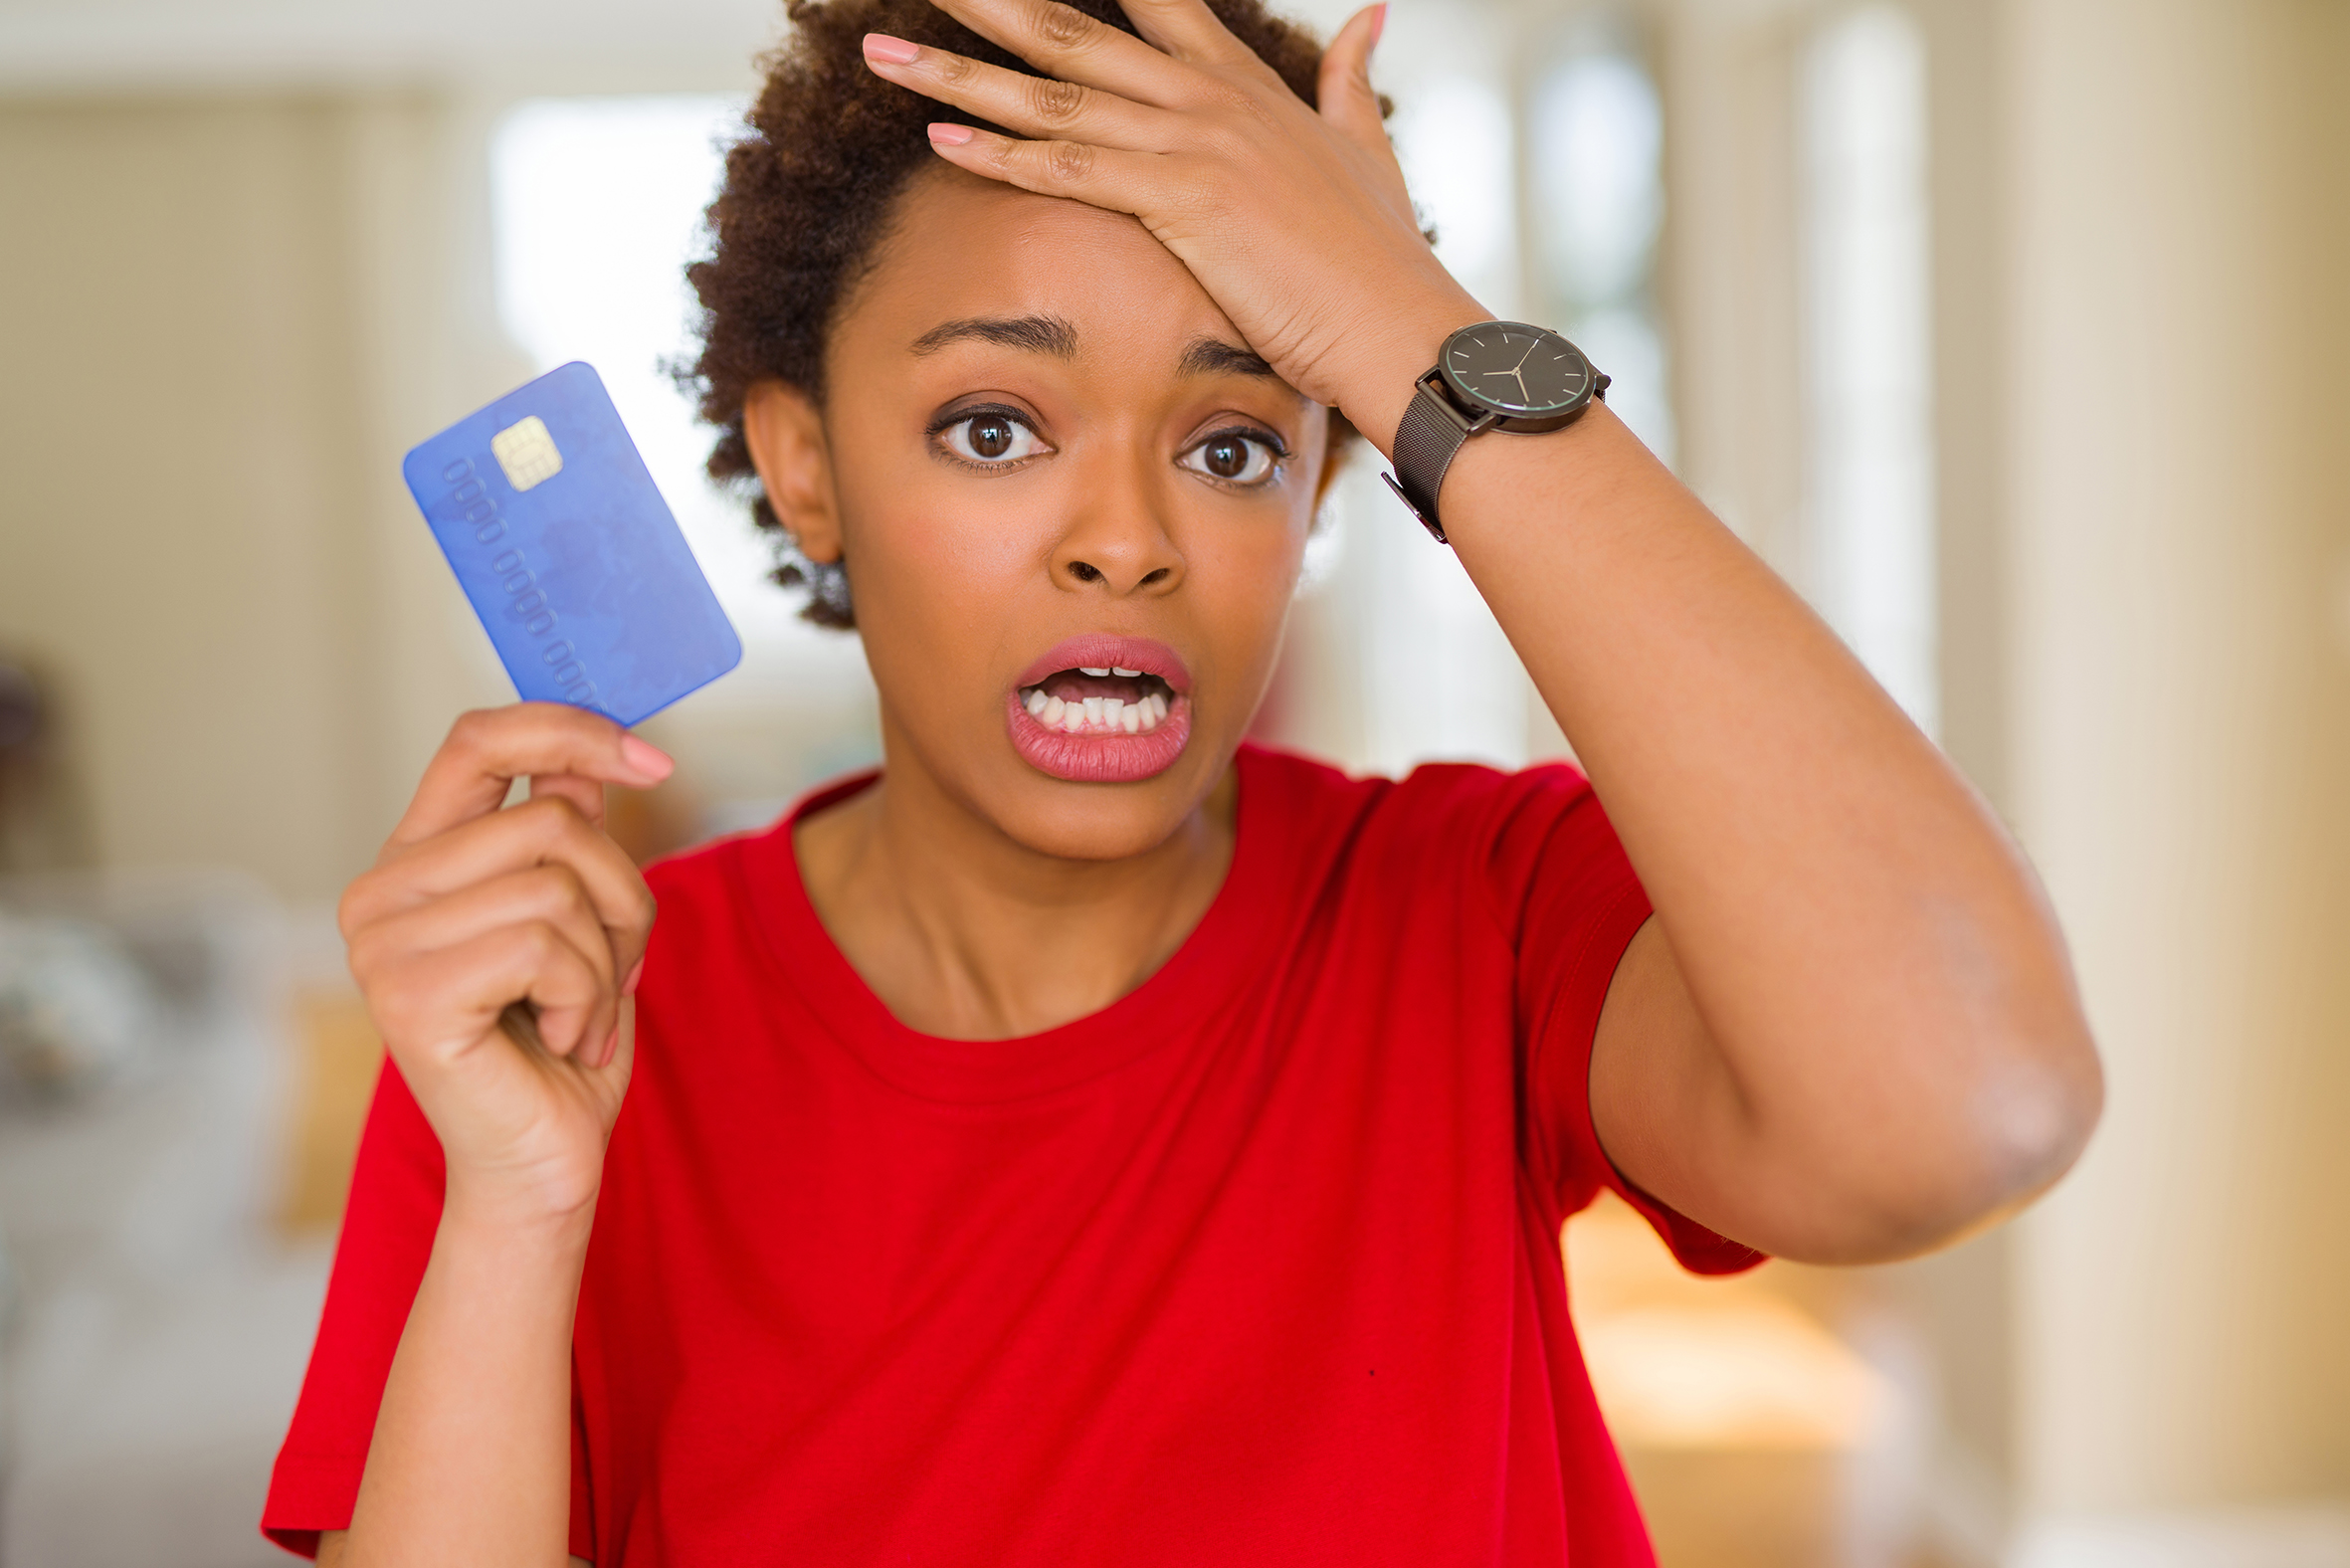 Credit card issuers lower cardholder limits, close accounts